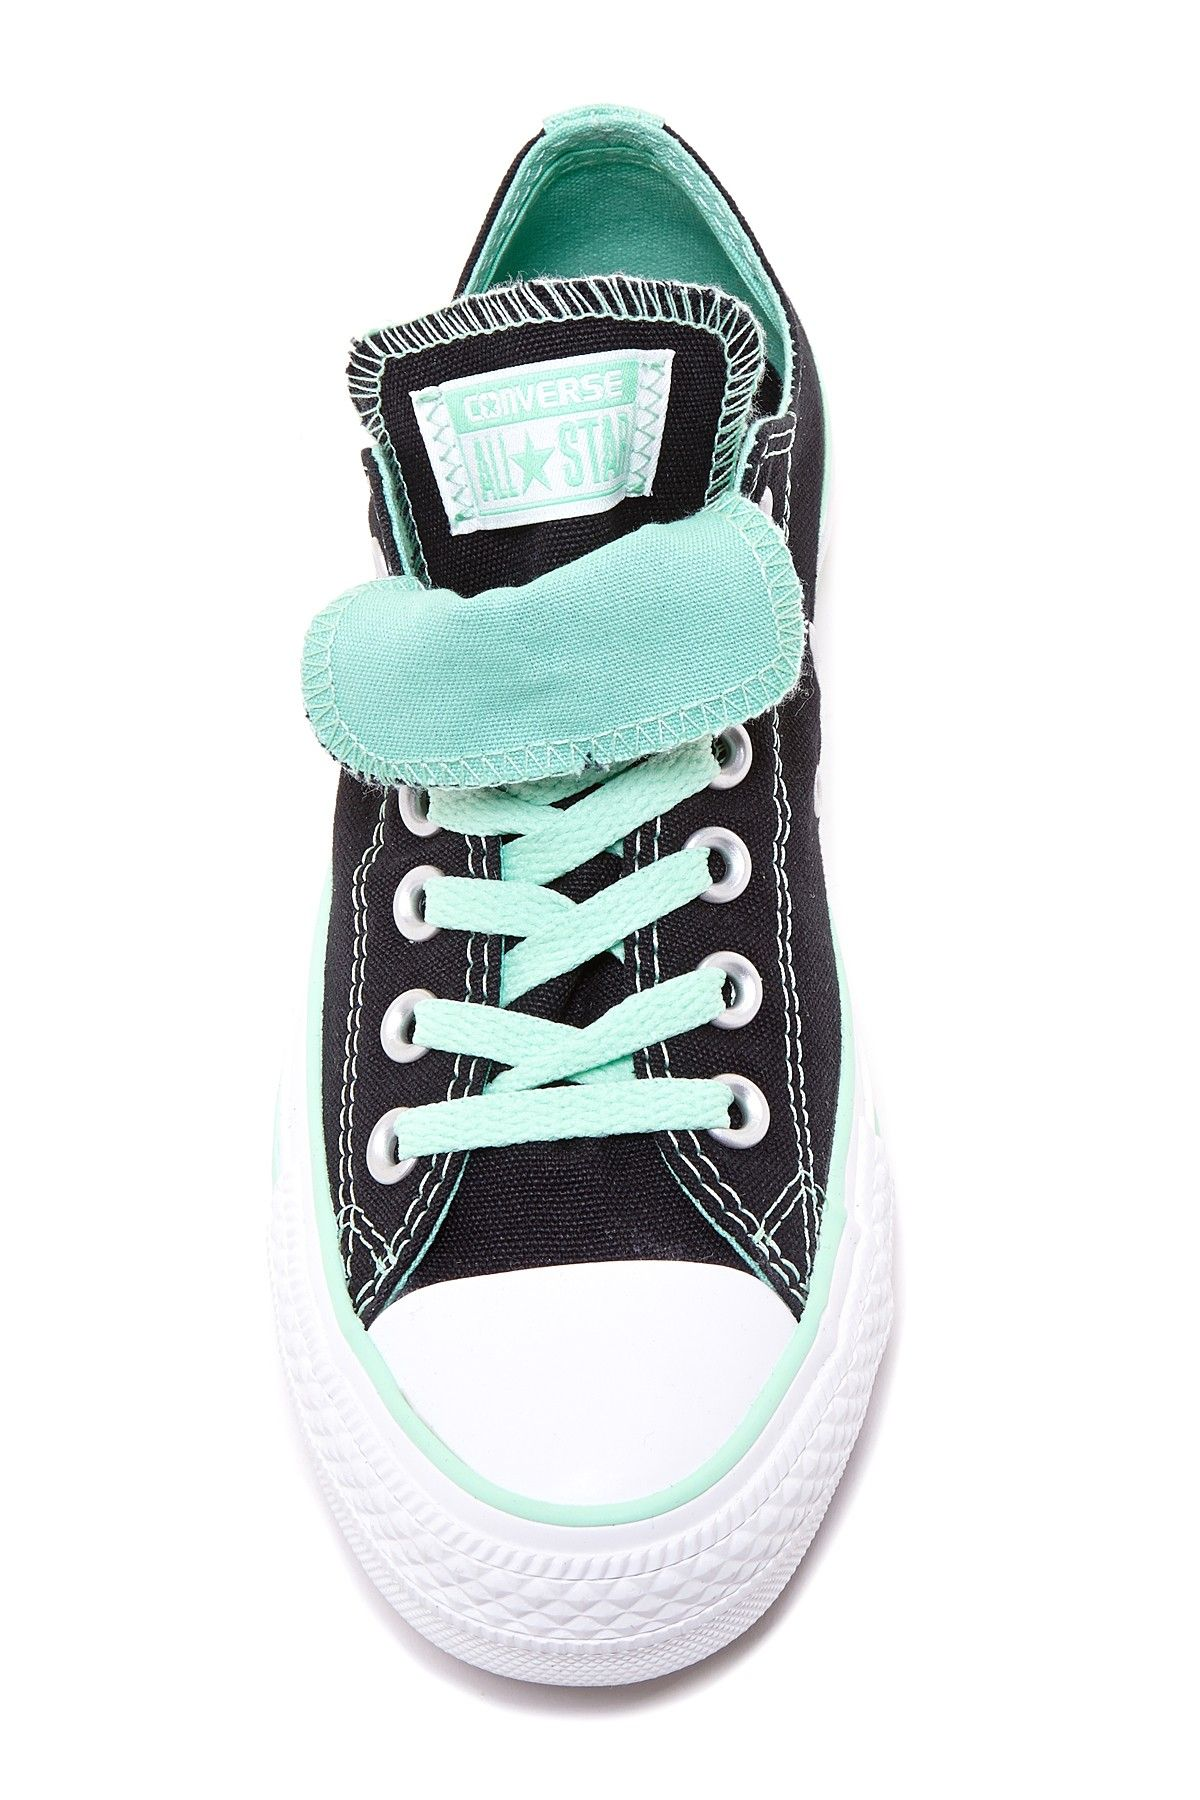 chaussure converse double